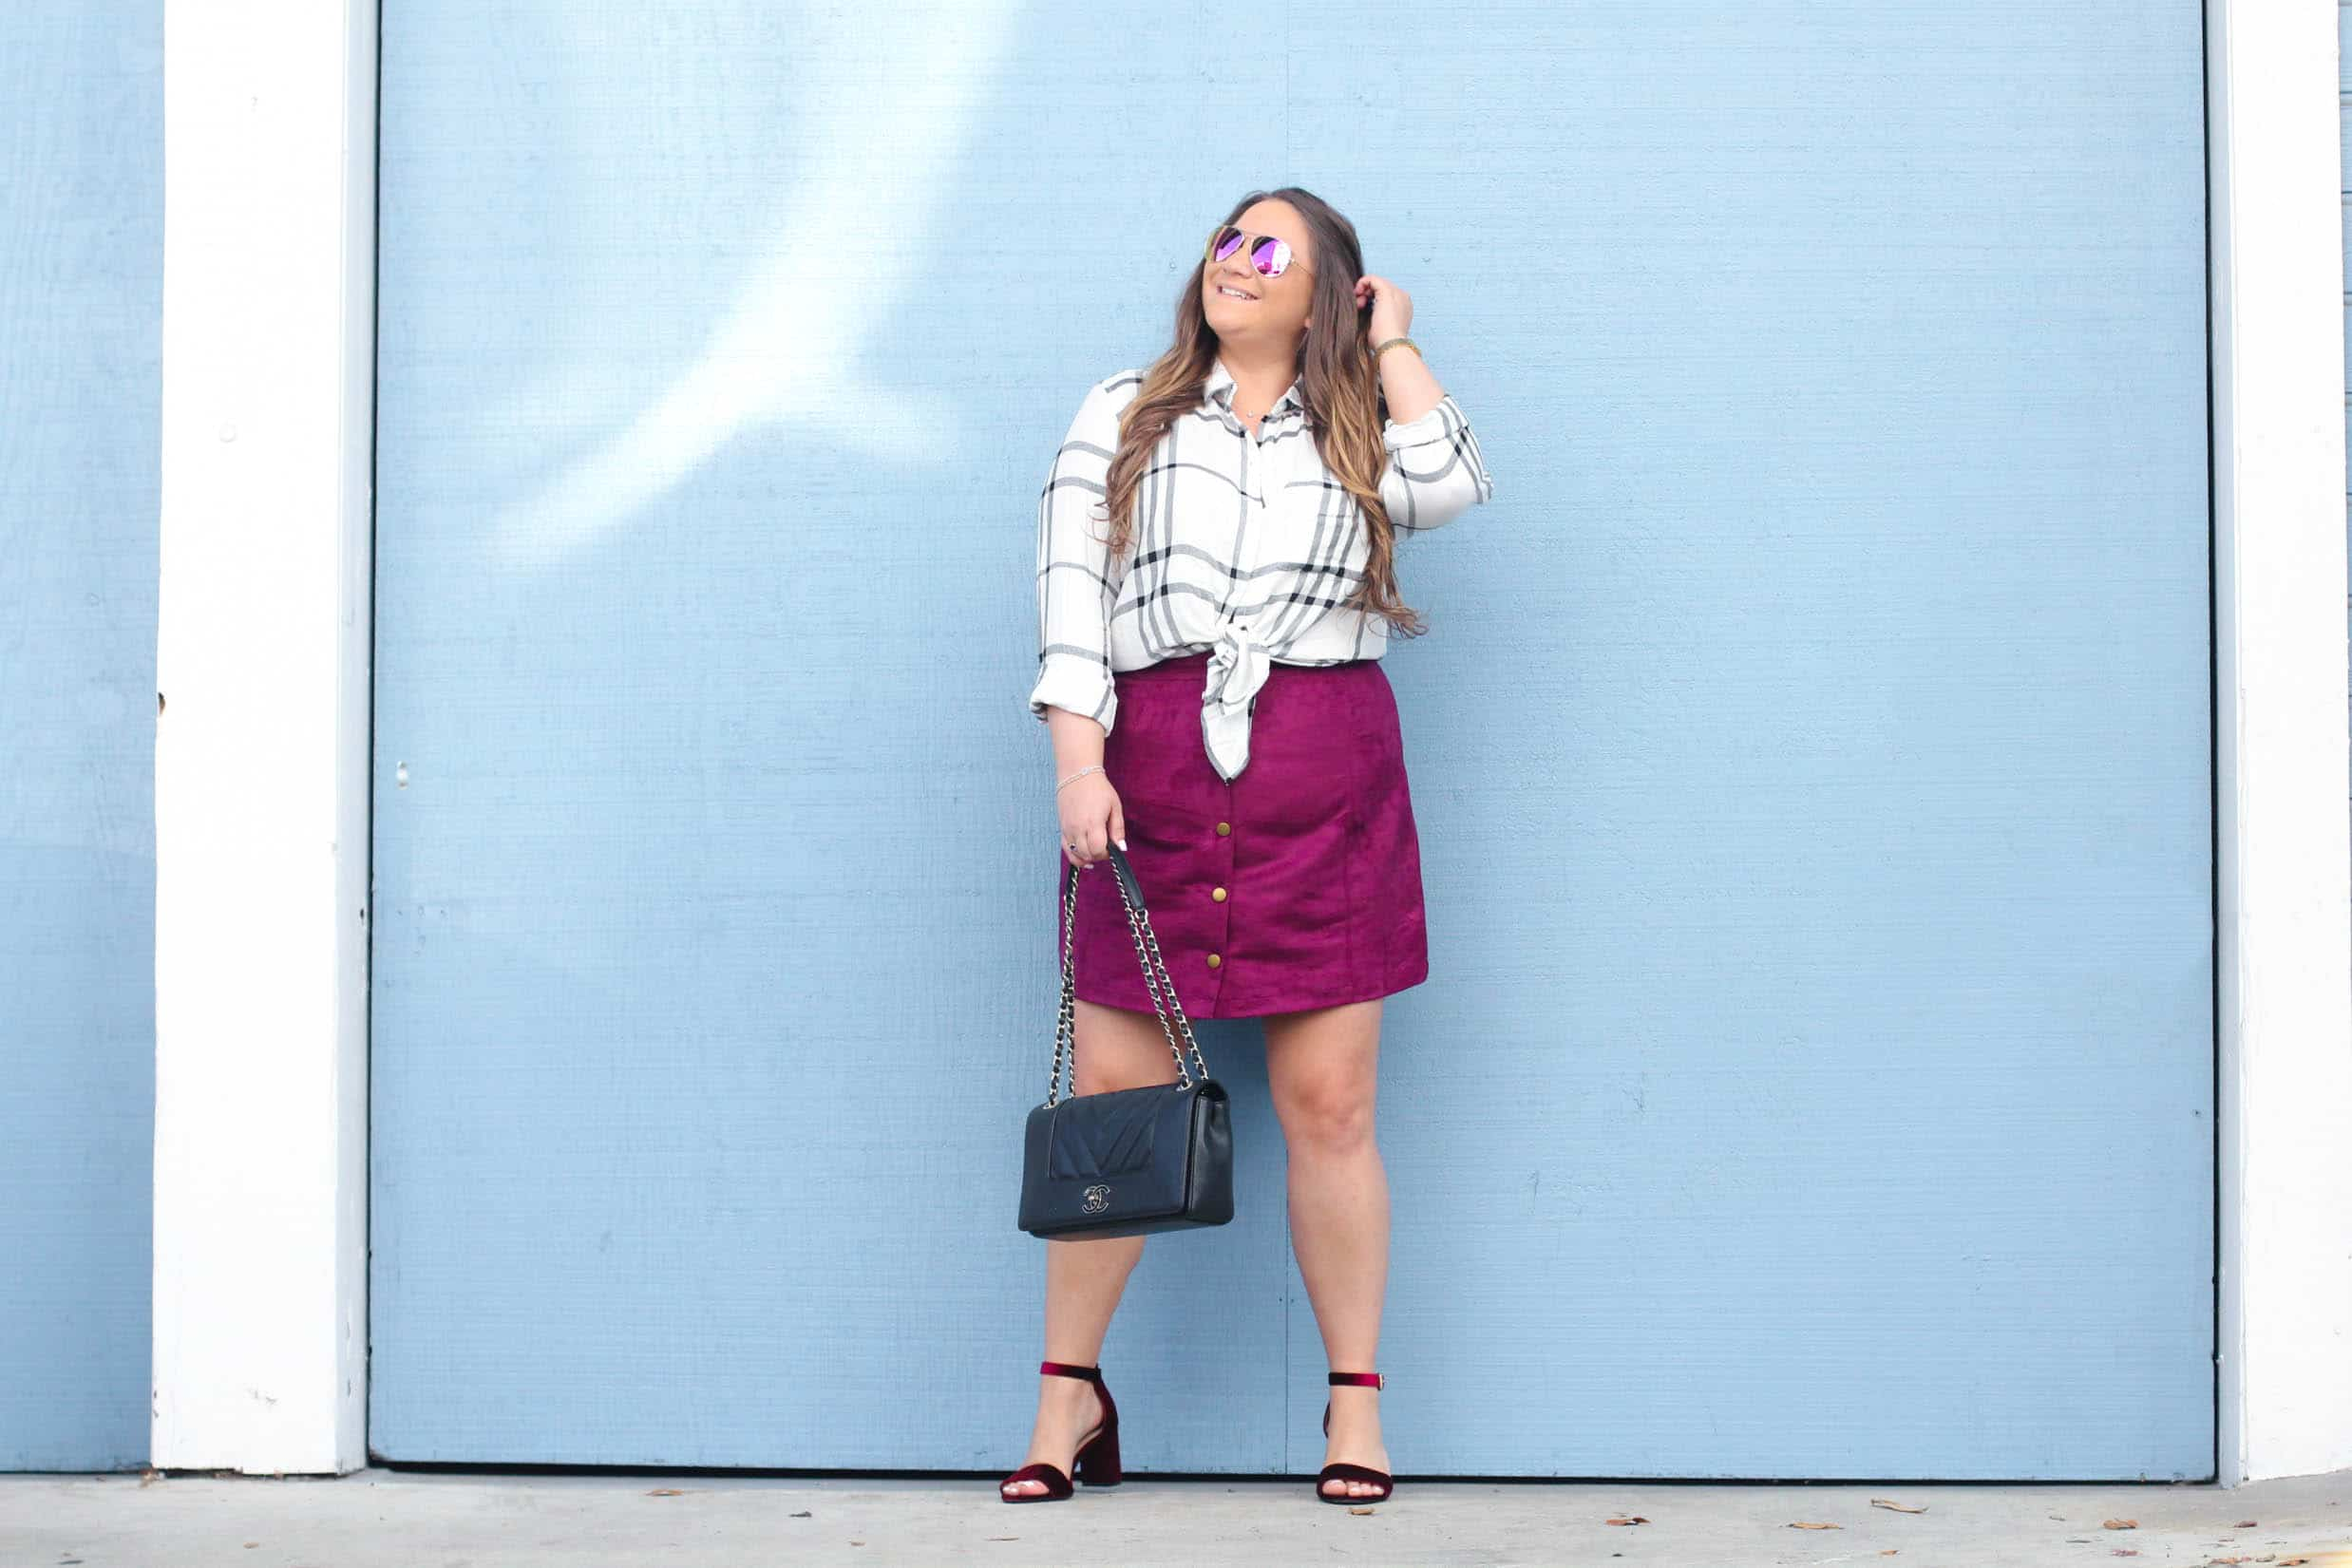 missyonmadison, missyonmadison instagram, fashion blog, fashion blogger, style blog, style blogger, fall fashion, fall 2017 style, fall trends, plaid, old navy style, old navy, holiday style, holiday style 2017, button up skirt, velvet shoes, velvet sandals, velvet ankle strap sandals, ankle strap sandals, chanel flap bag, chanel bag, diff eyewear, mirrored aviators, pink sunglasses, pink aviators, plaid button down shirt,